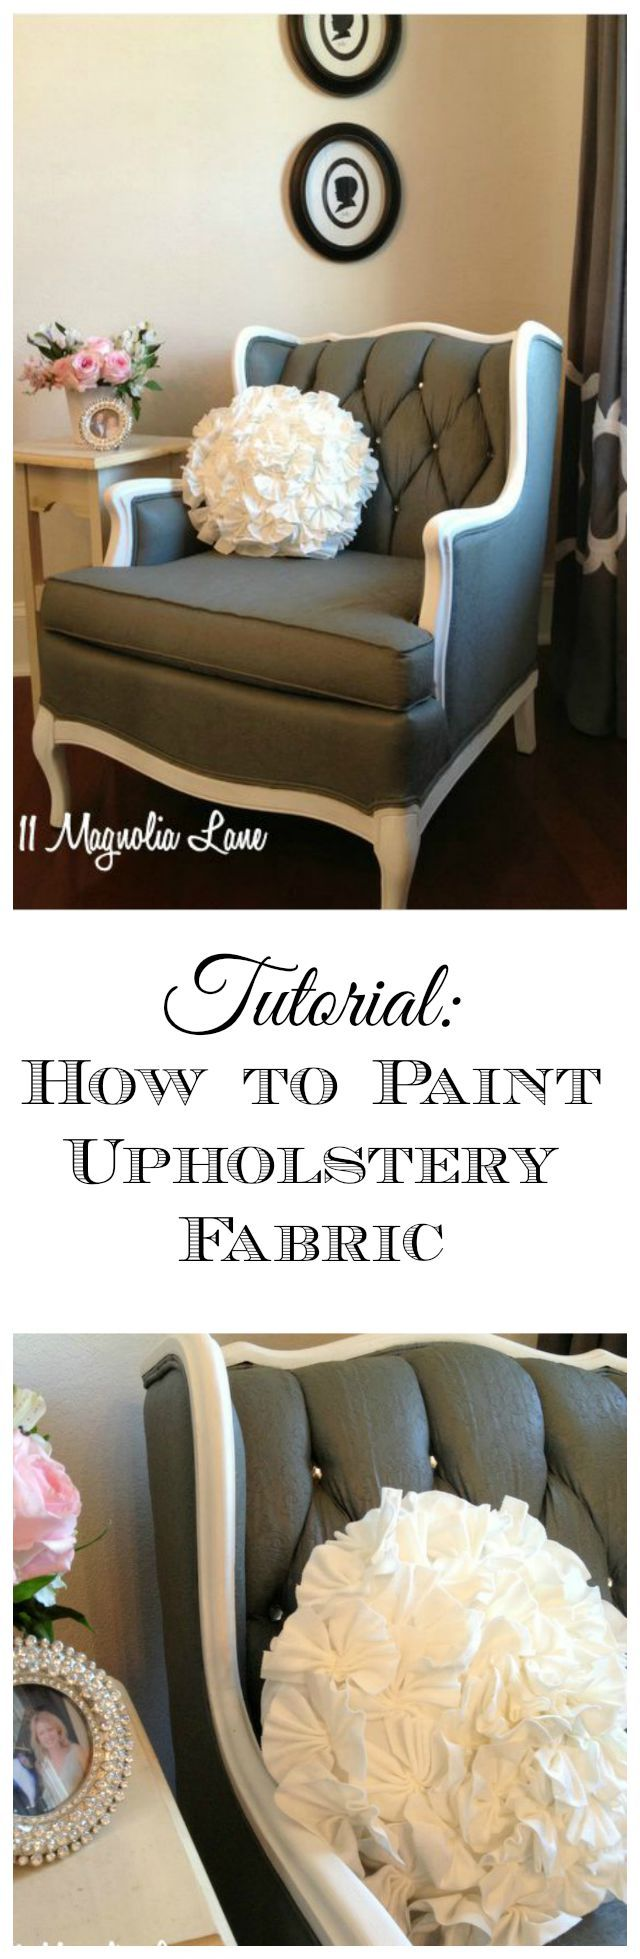 Upholstery fabric chair - Tutorial How To Paint Upholstery Fabric And Completely Transform A Chair